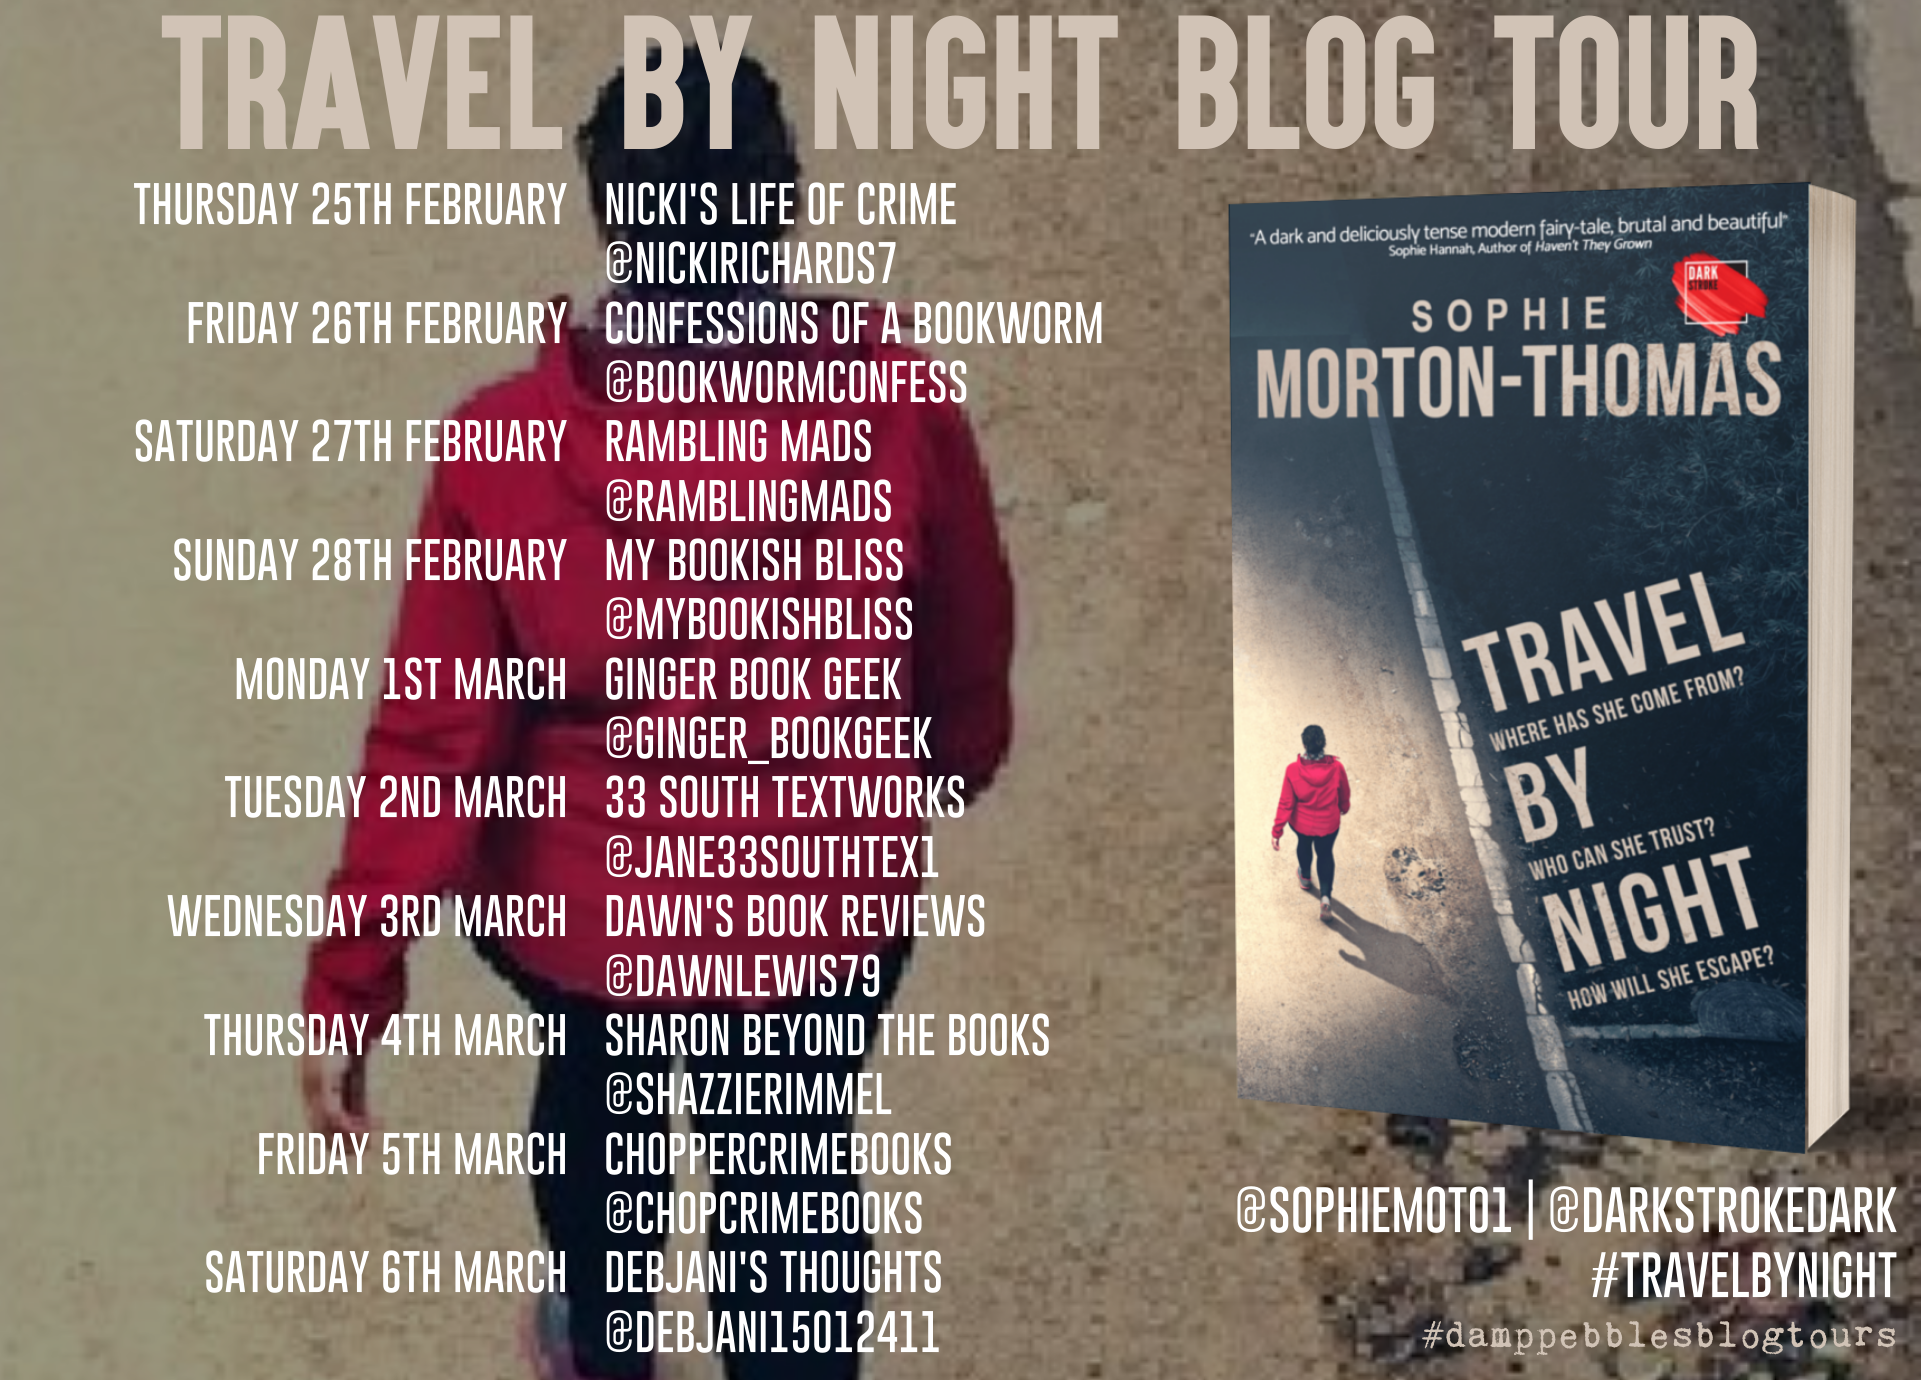 Travel By Night blog tour